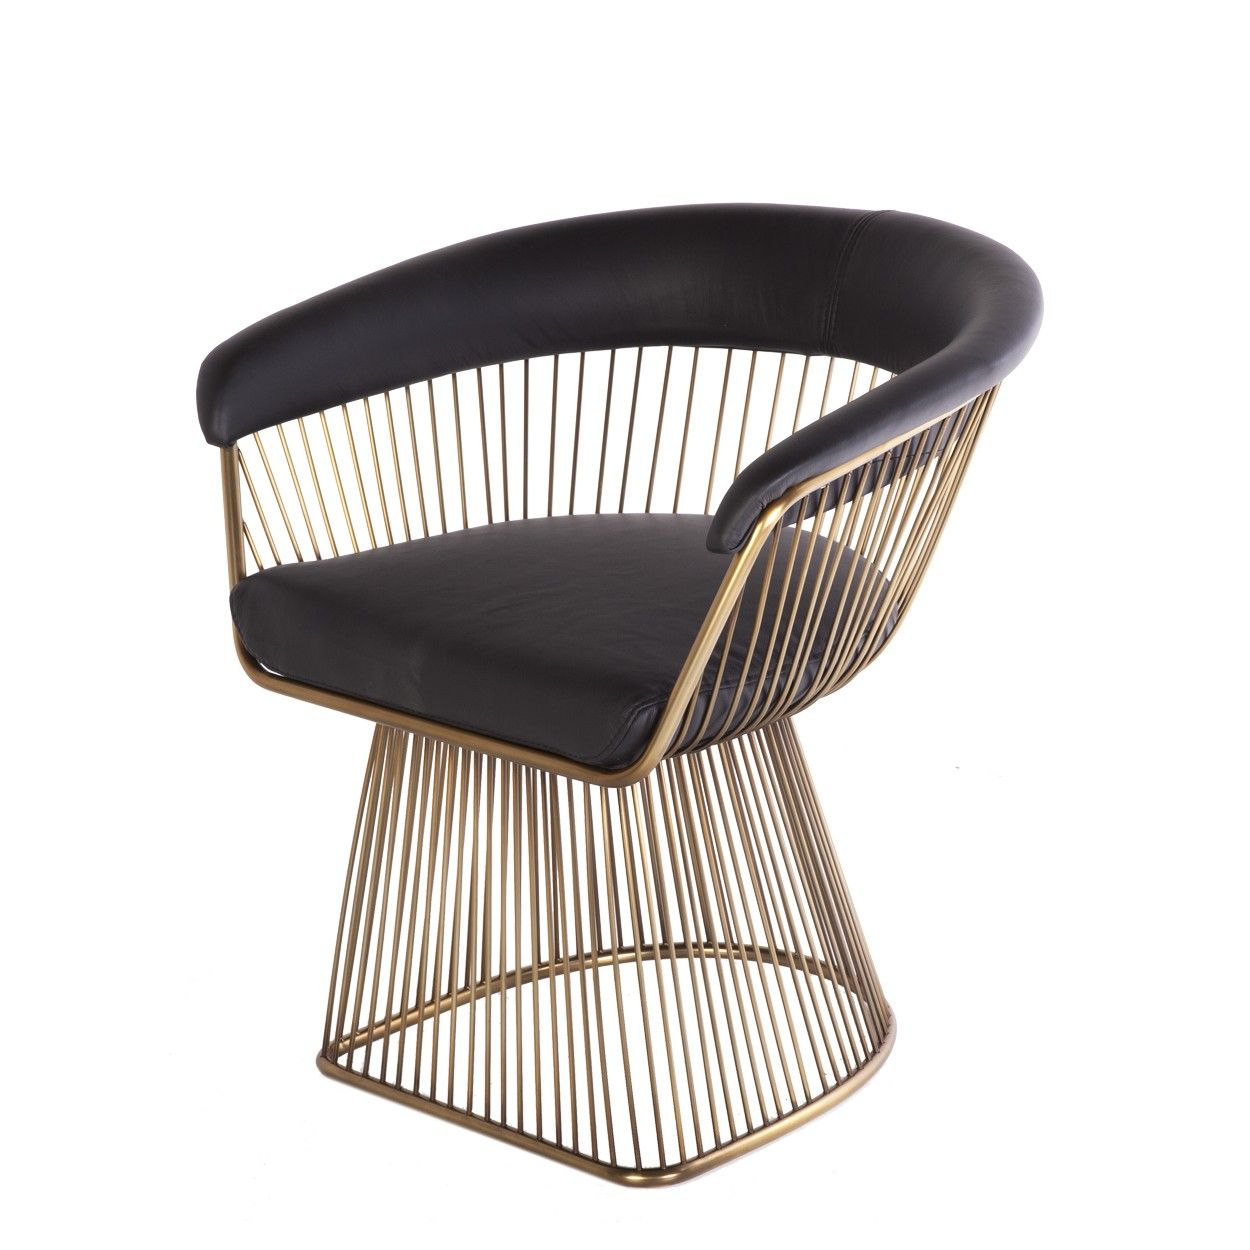 Marvelous Platner Arm Chair   Black Leather And Copper Http://www.franceandson.